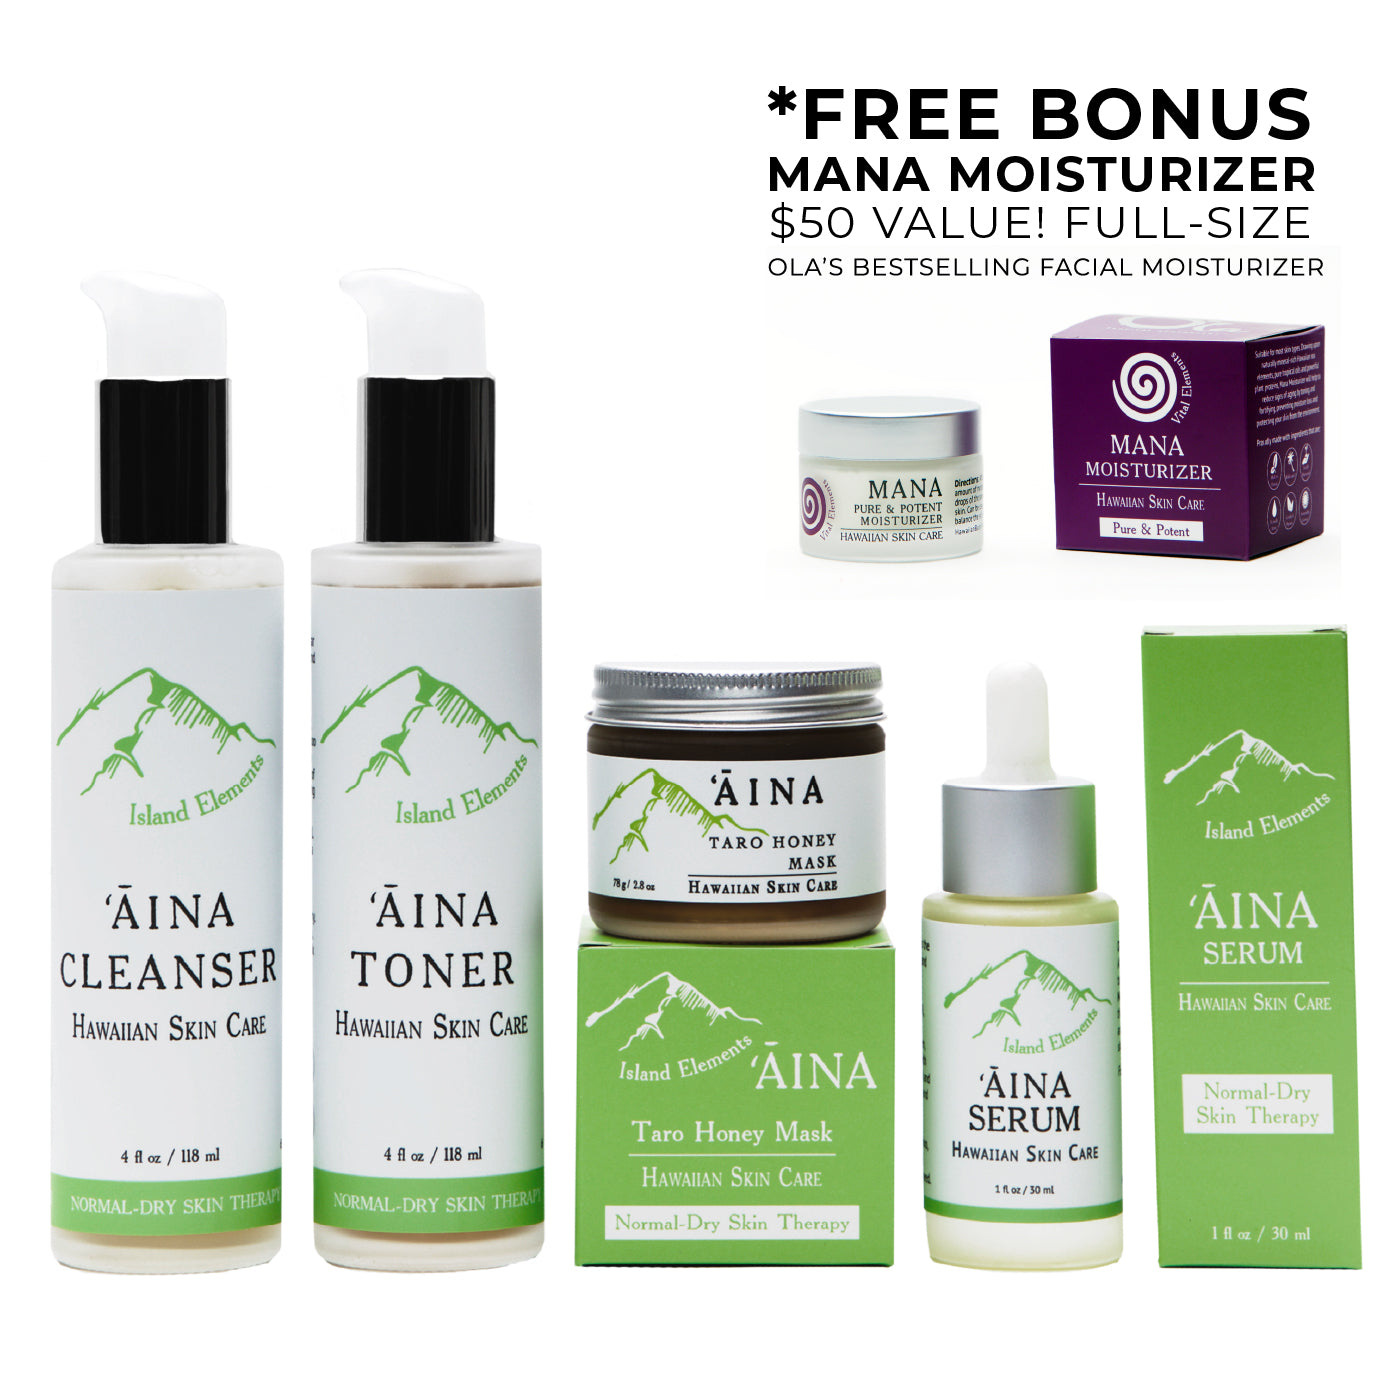 ʻĀina Anti-Aging Skincare Set with Free Mana Moisturizer